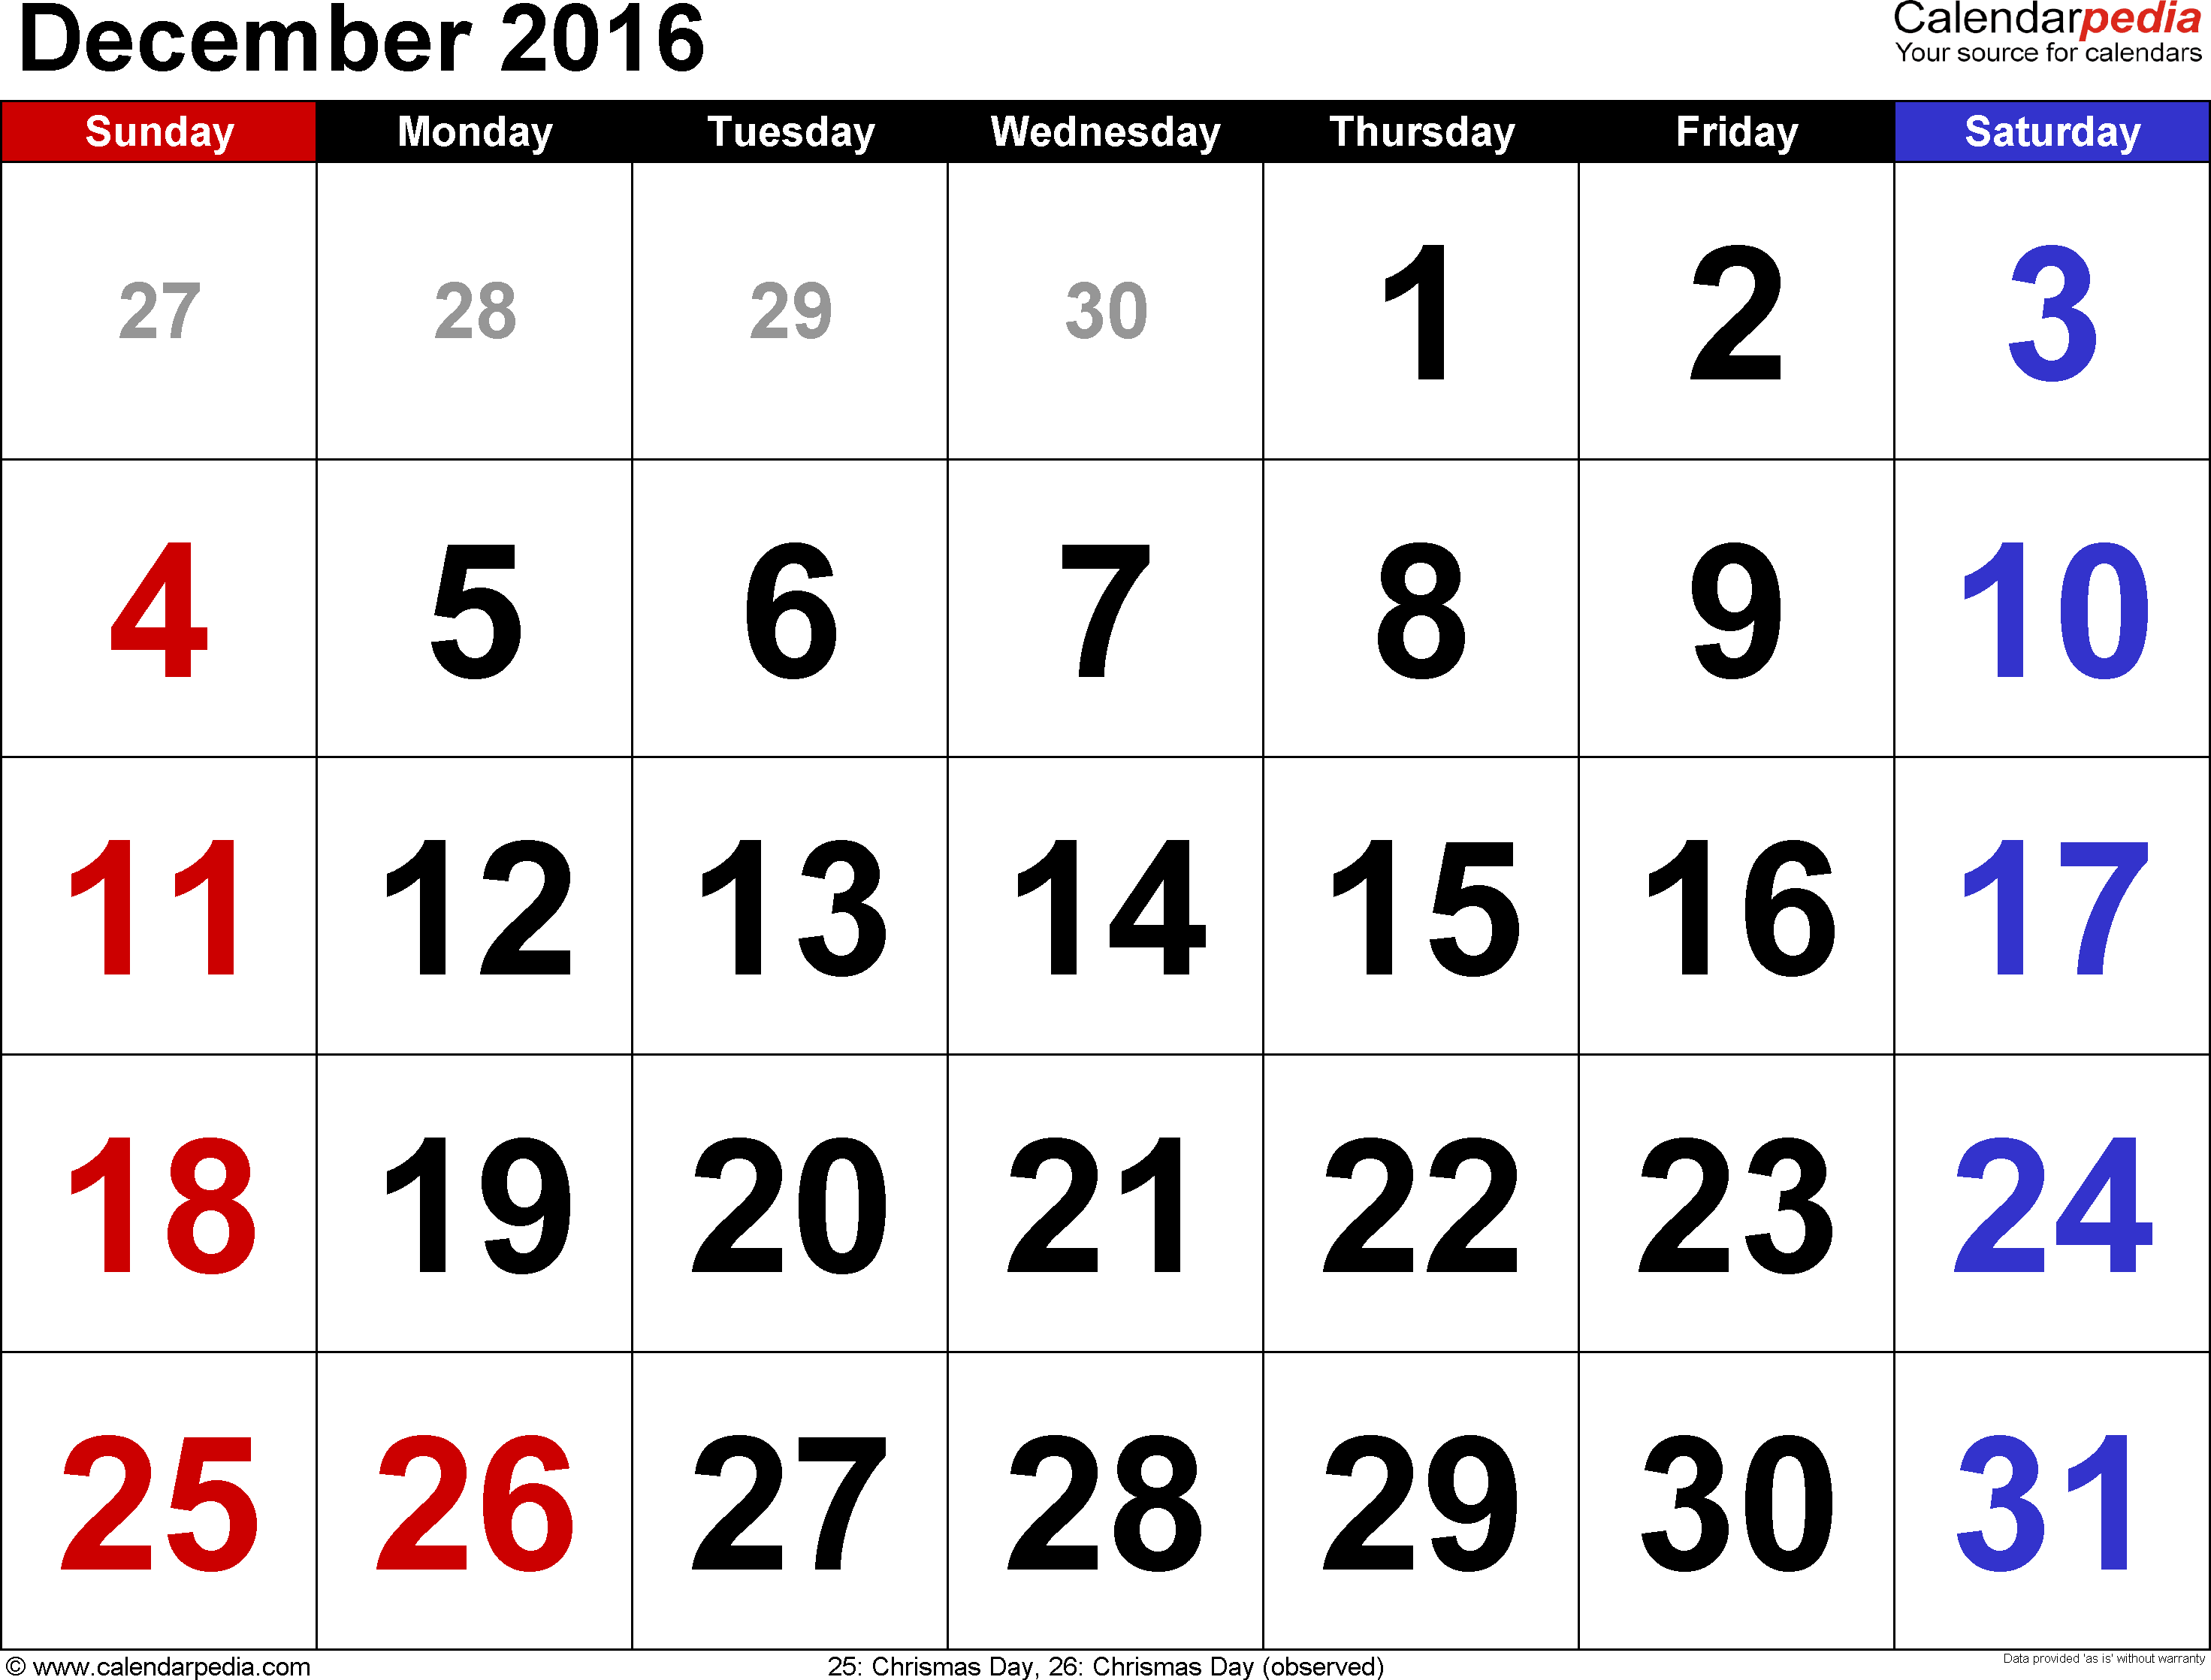 December 2016 calendar, landscape orientation, large numerals, available as printable templates for Word, Excel and PDF